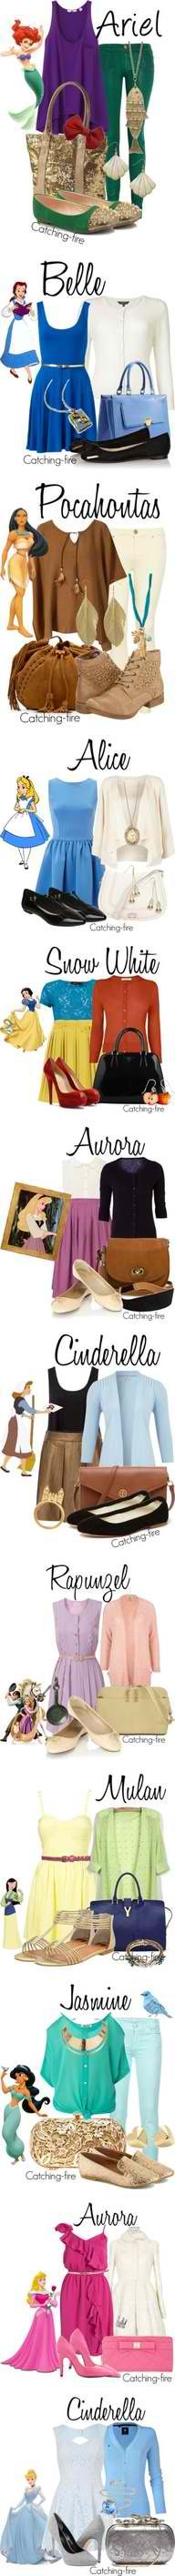 disney princess outfits modern day. so cute!